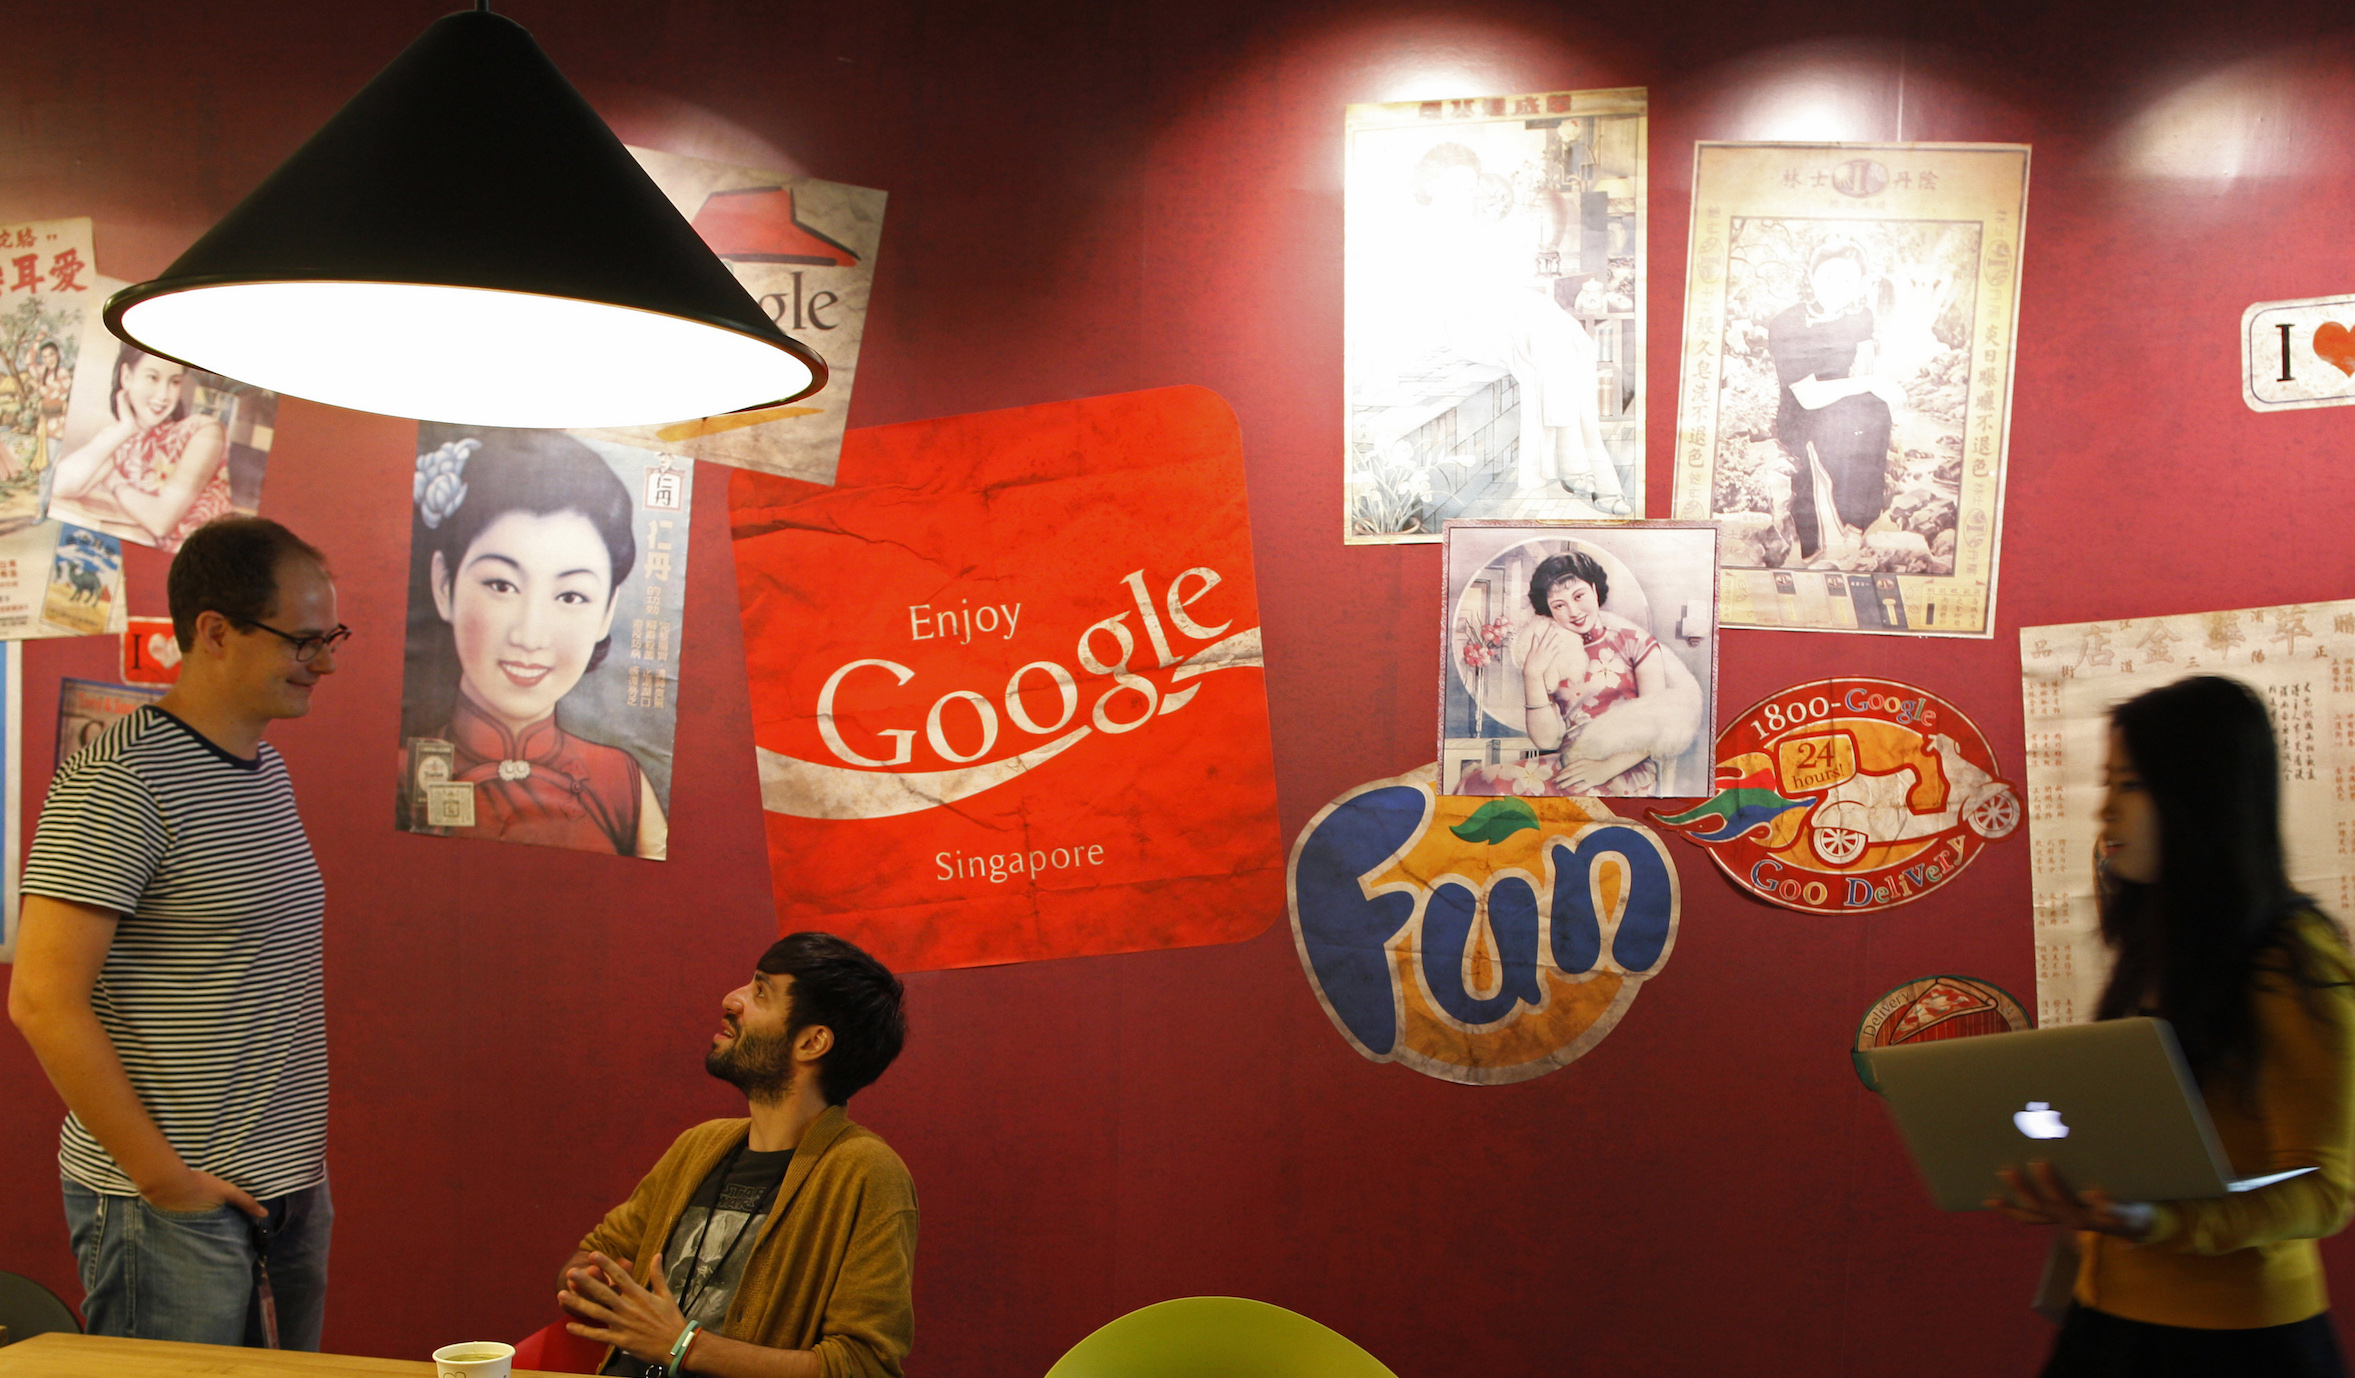 "Google's communications manager Robin Moroney (L) speaks to employees at a pantry decorated with vintage Singapore advertisements and signages in their Singapore office July 8, 2013. Singapore's move to tighten regulation of news web sites, already under fire from bloggers and human rights groups, has attracted criticism from an unexpected quarter - large internet firms with a big presence in the city-state who say the new rules will hurt the industry. Web giants Facebook Inc, eBay Inc, Google Inc and Yahoo! Inc have said the revised rules ""have negatively impacted Singapore's global image as an open and business-friendly country"". REUTERS/Edgar Su (SINGAPORE - Tags: MEDIA BUSINESS POLITICS SCIENCE TECHNOLOGY) - RTX11GDD"